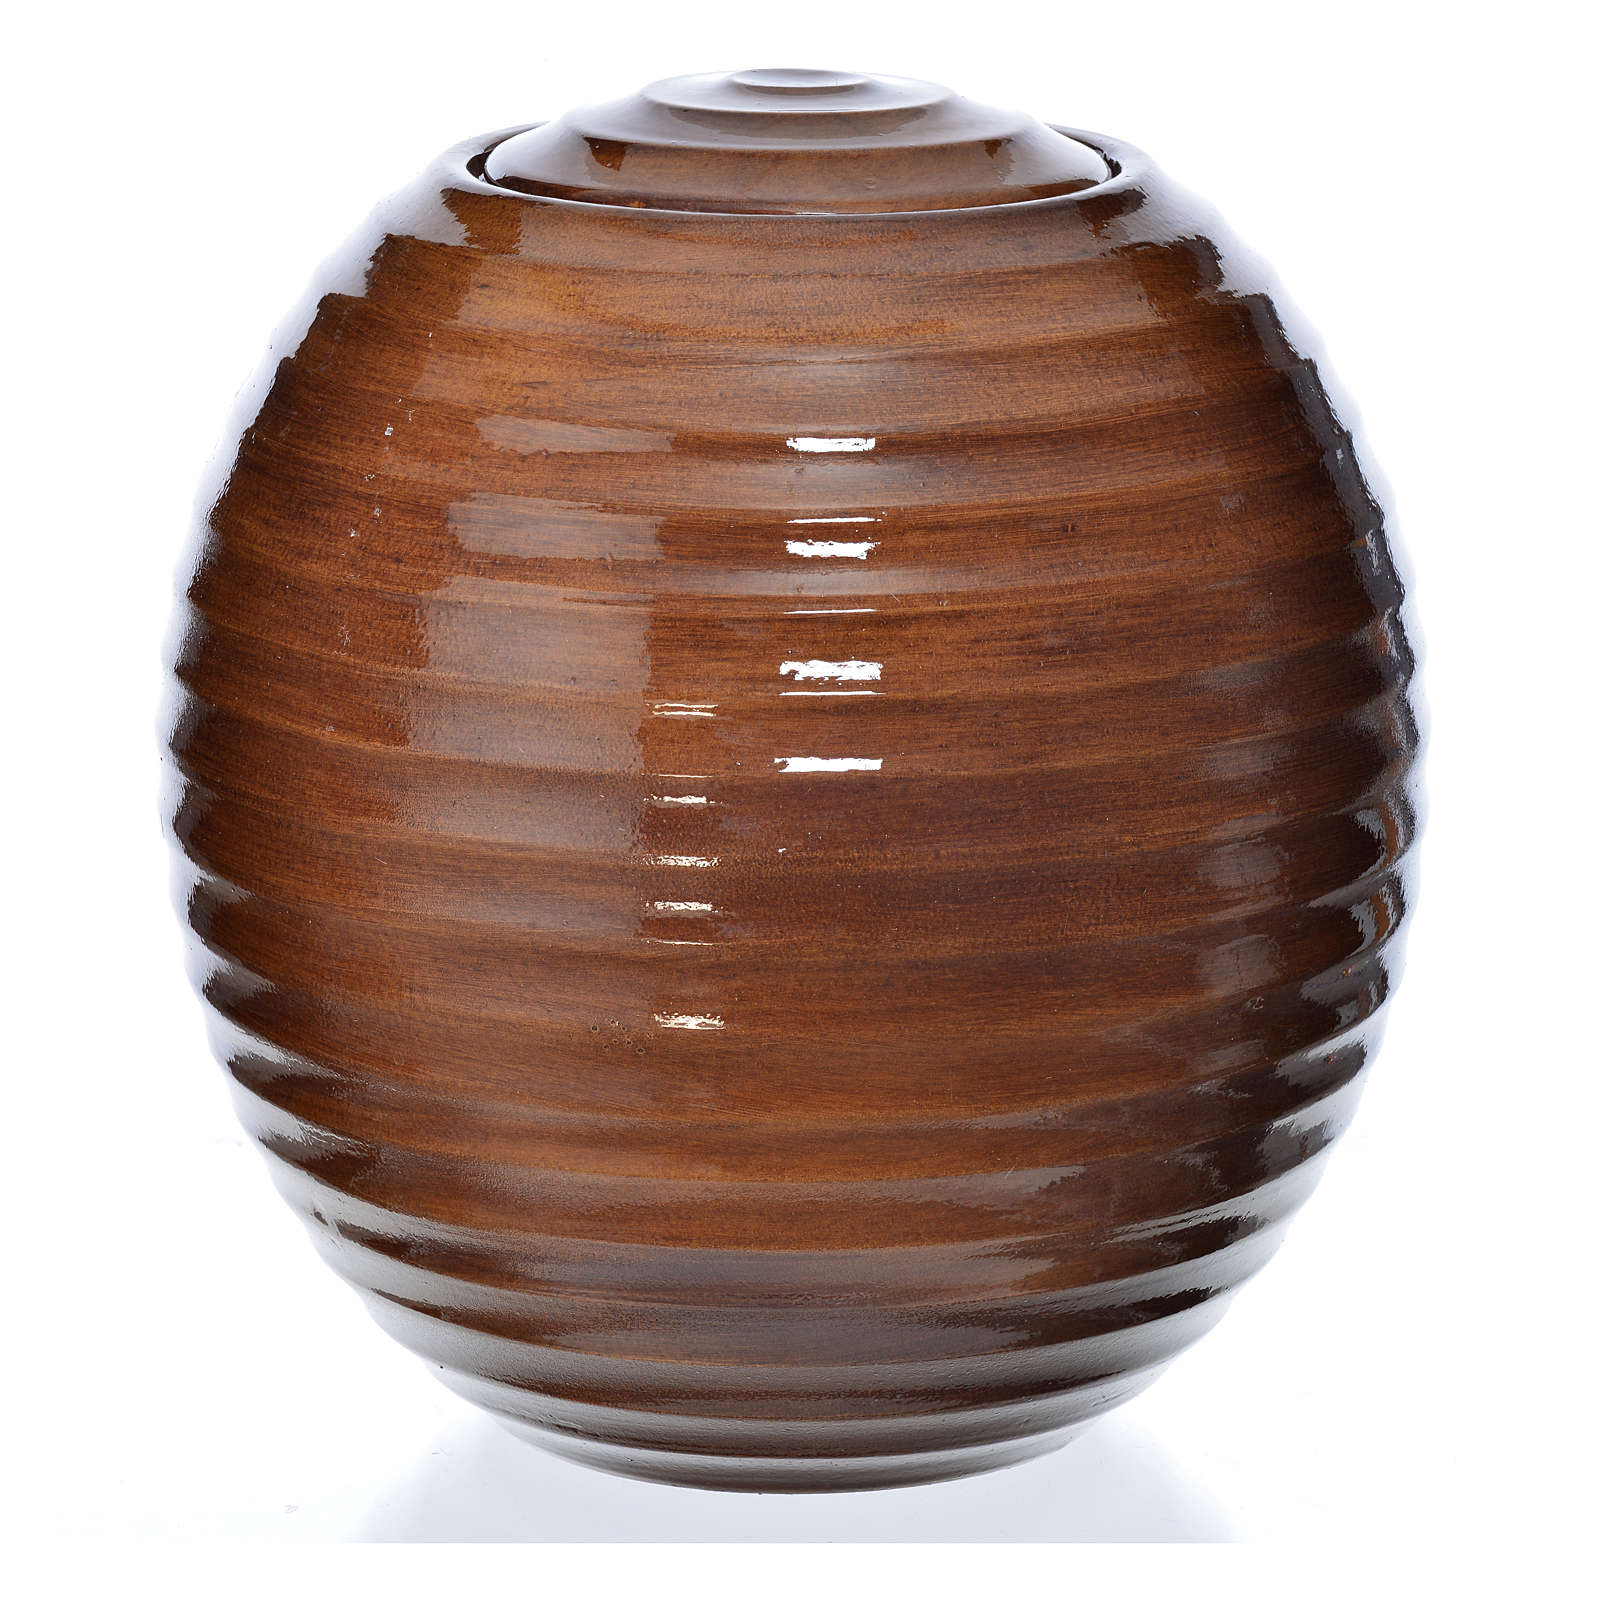 Cremation urn in porcelain, hand painted wooden effect 3